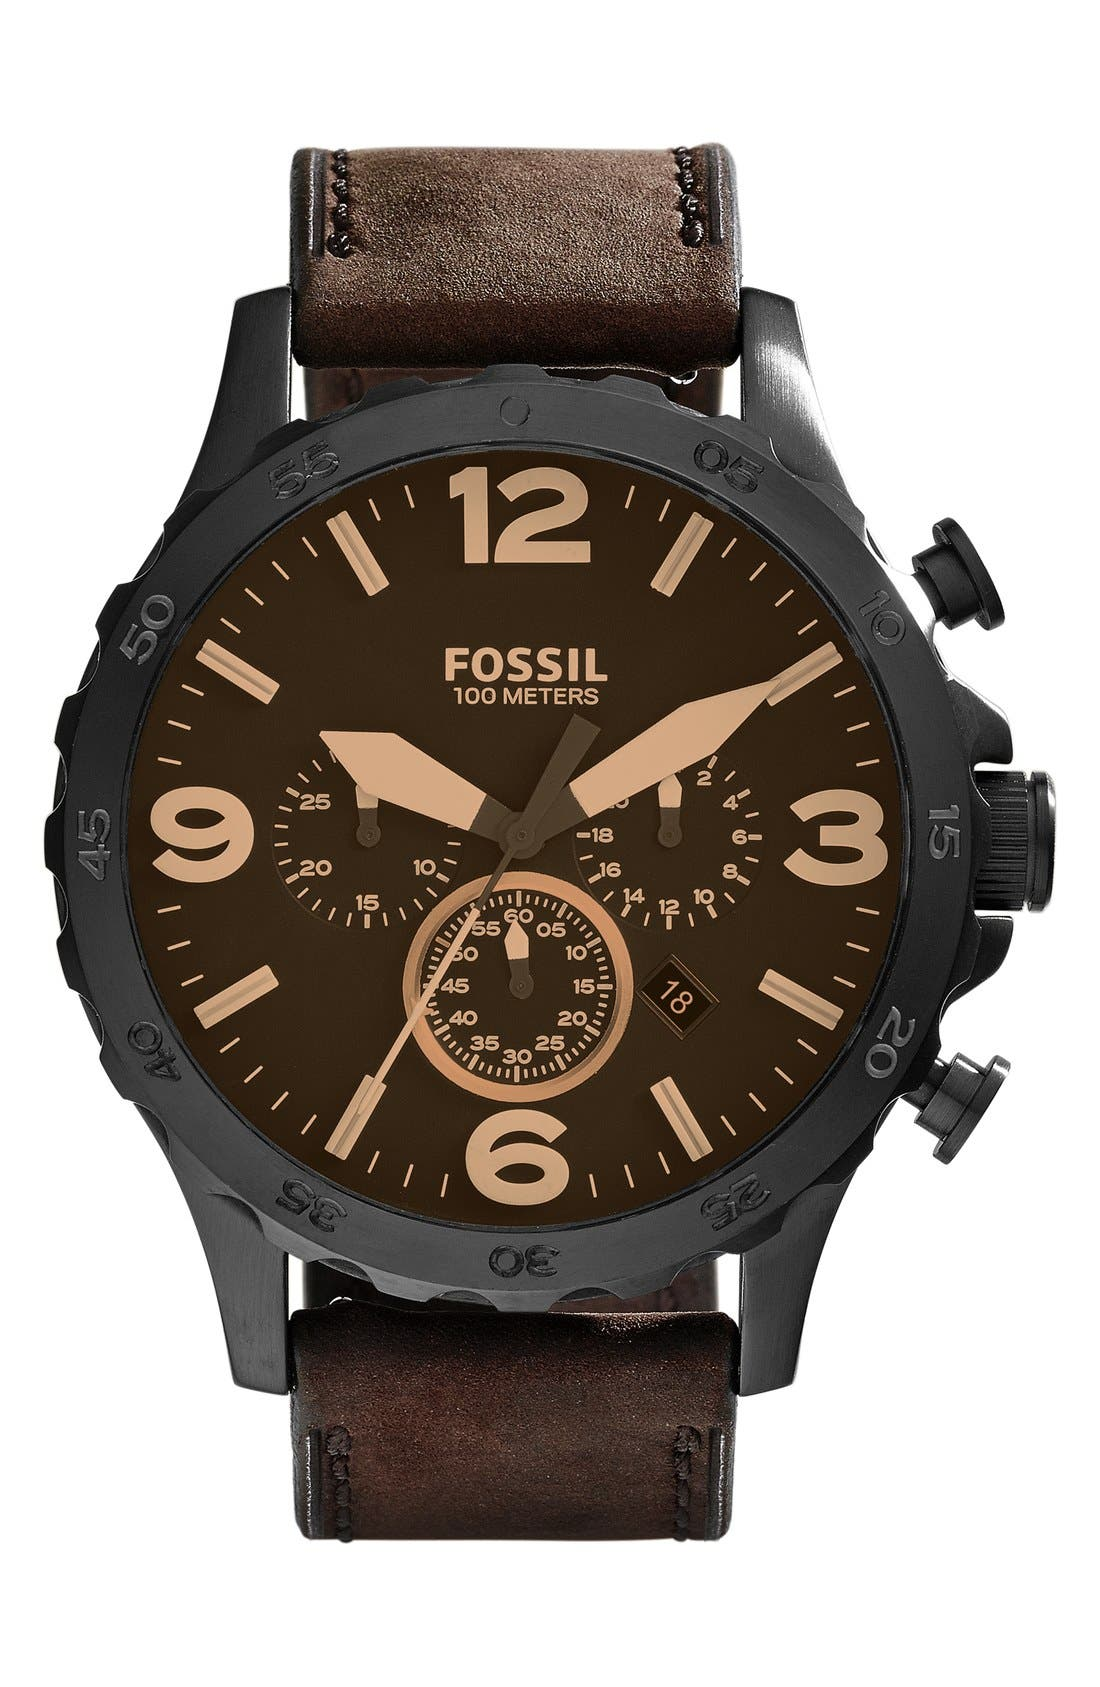 FOSSIL, 'Nate IP' Chronograph Watch, 50mm, Main thumbnail 1, color, BROWN/ BLACK